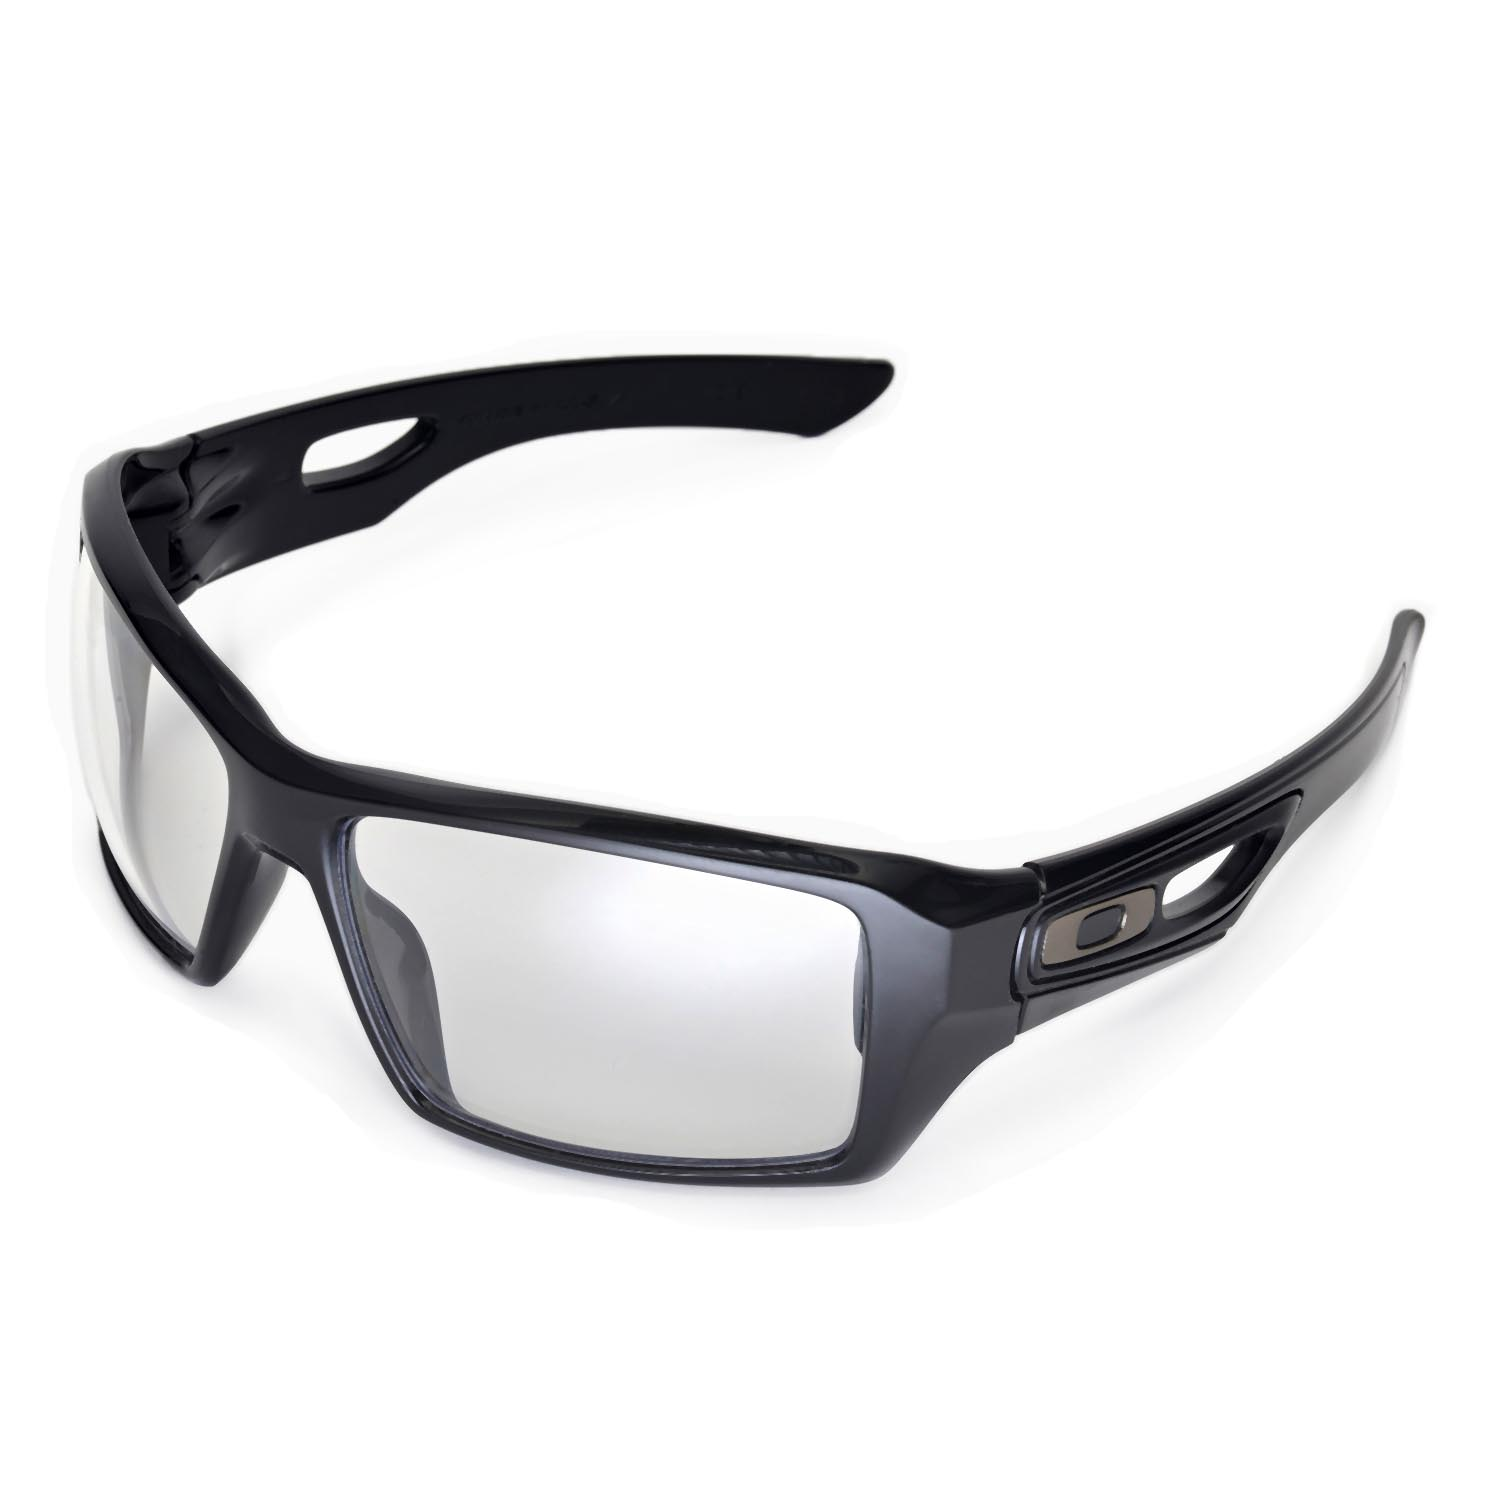 oakley glasses clear lens  new walleva clear lenses for oakley eyepatch 2